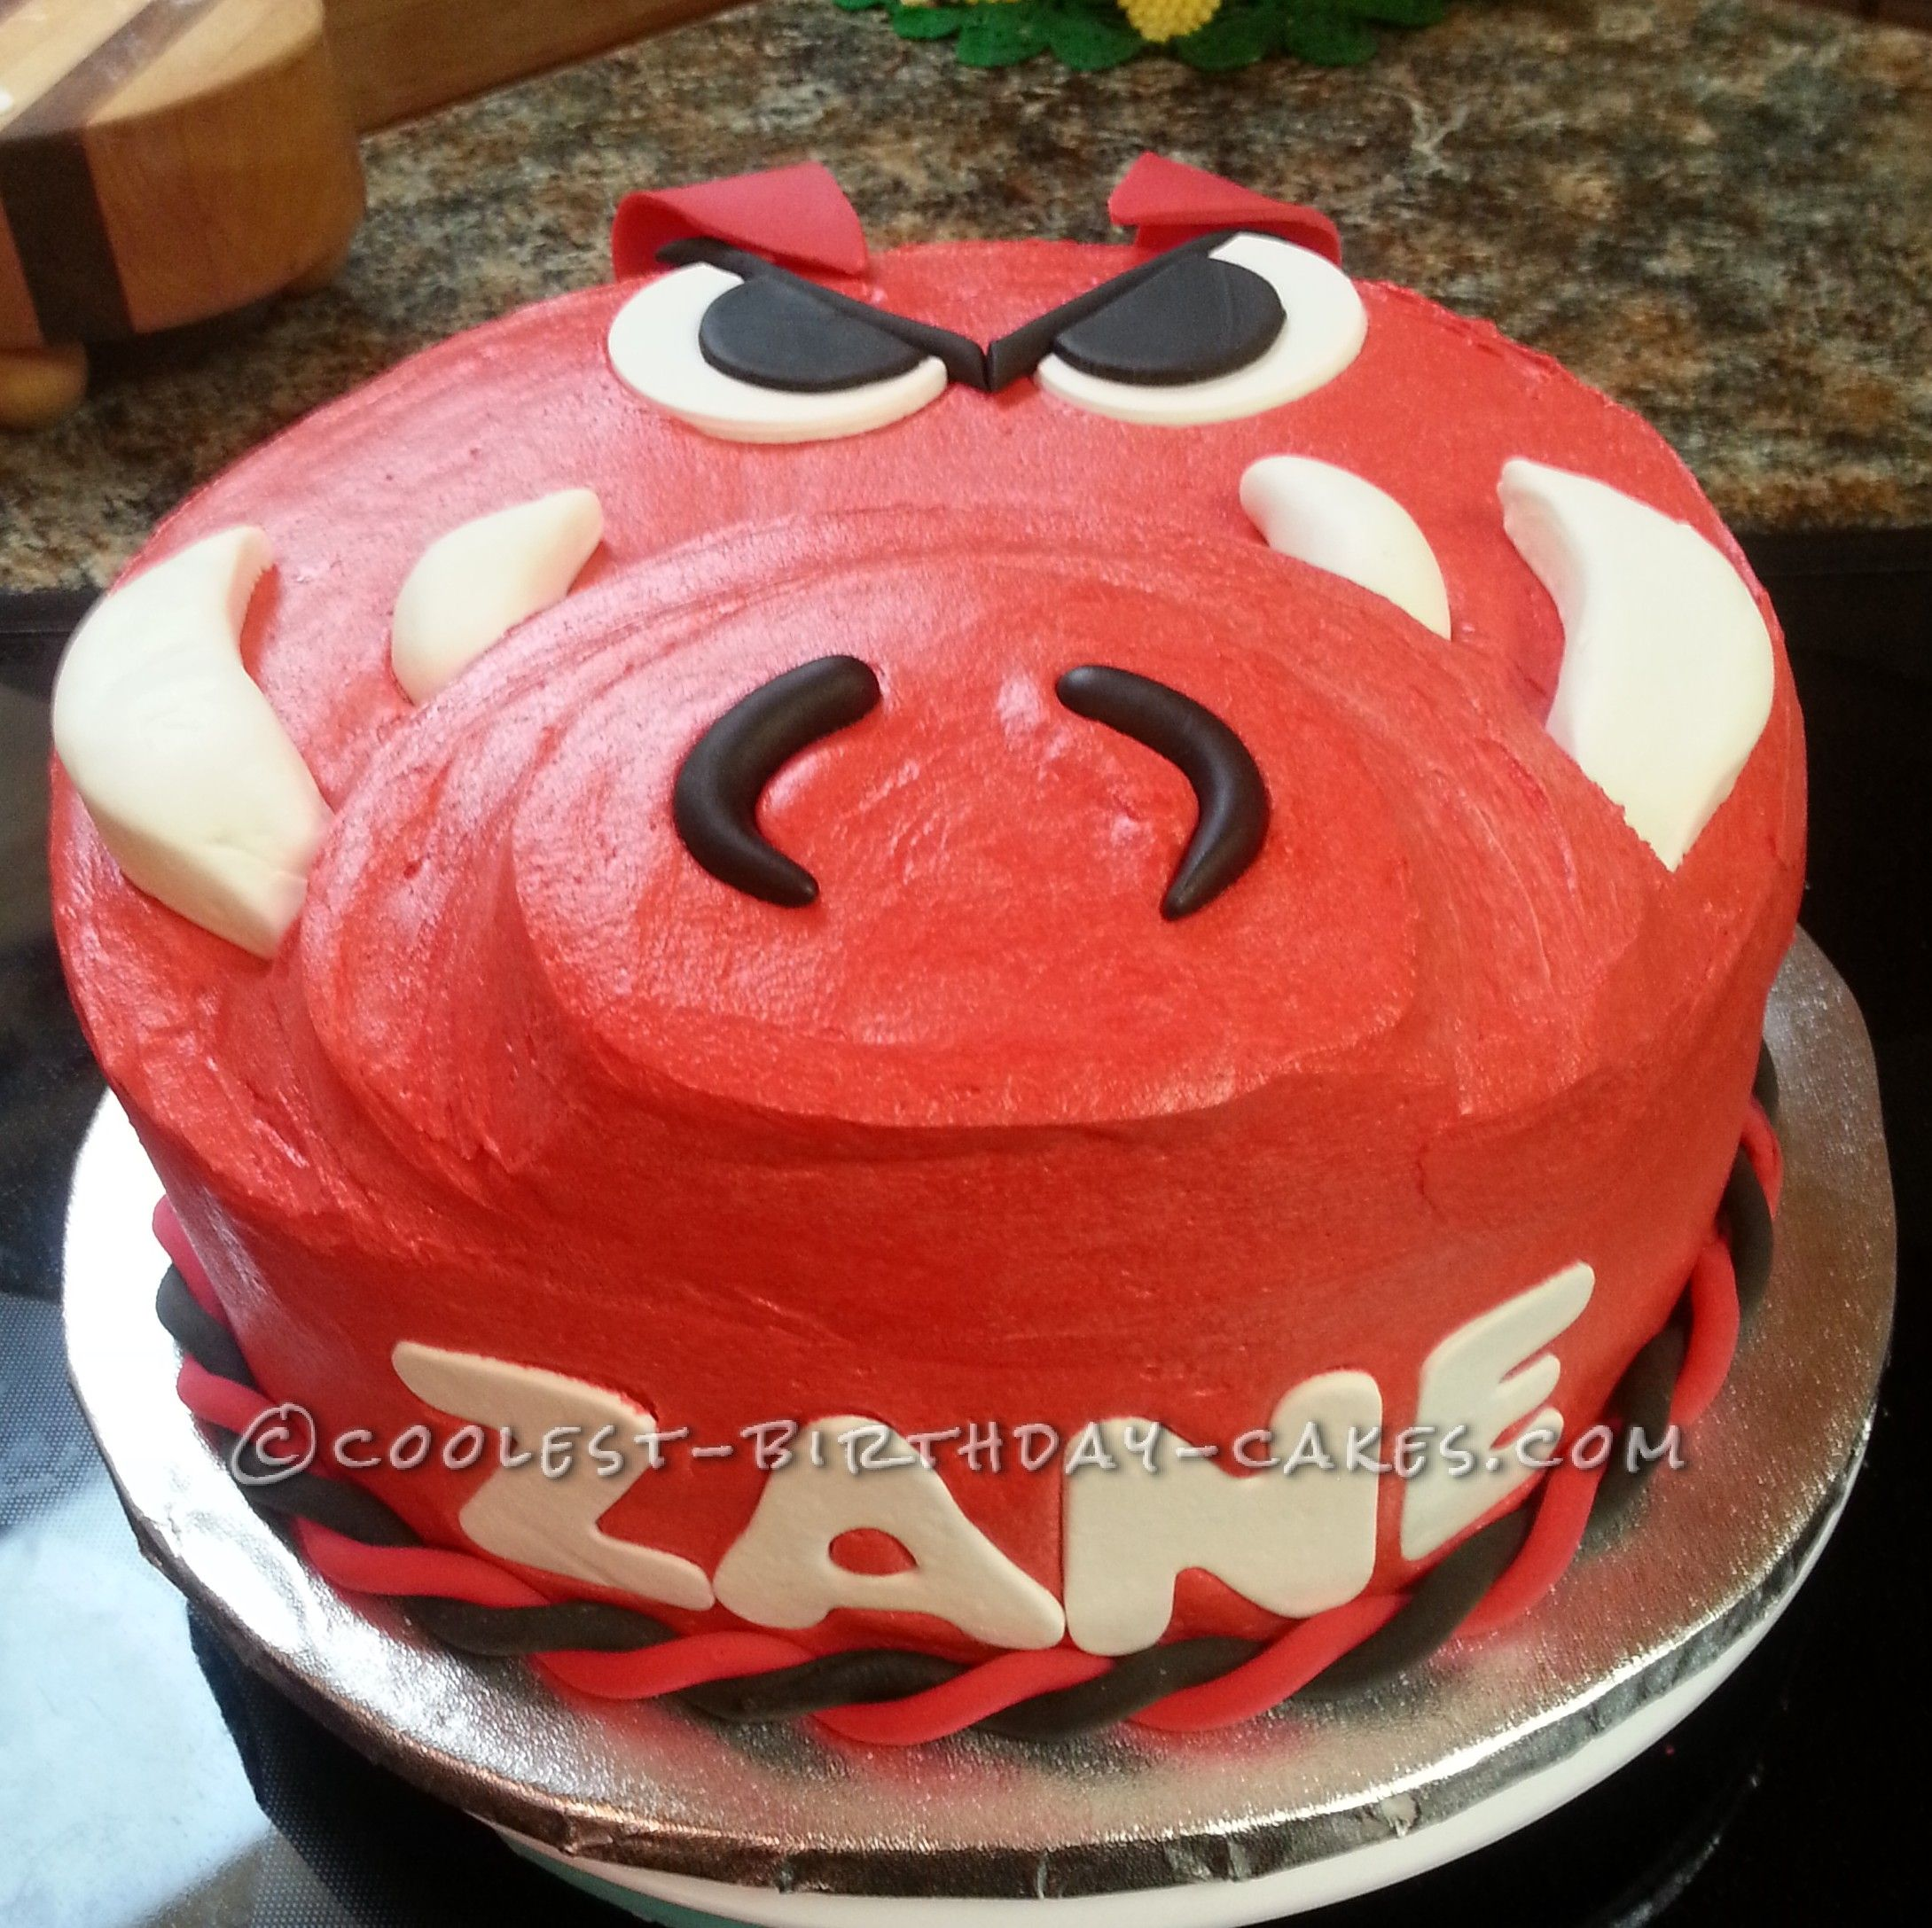 Go Hogs! Razorbacks Birthday Cake!...